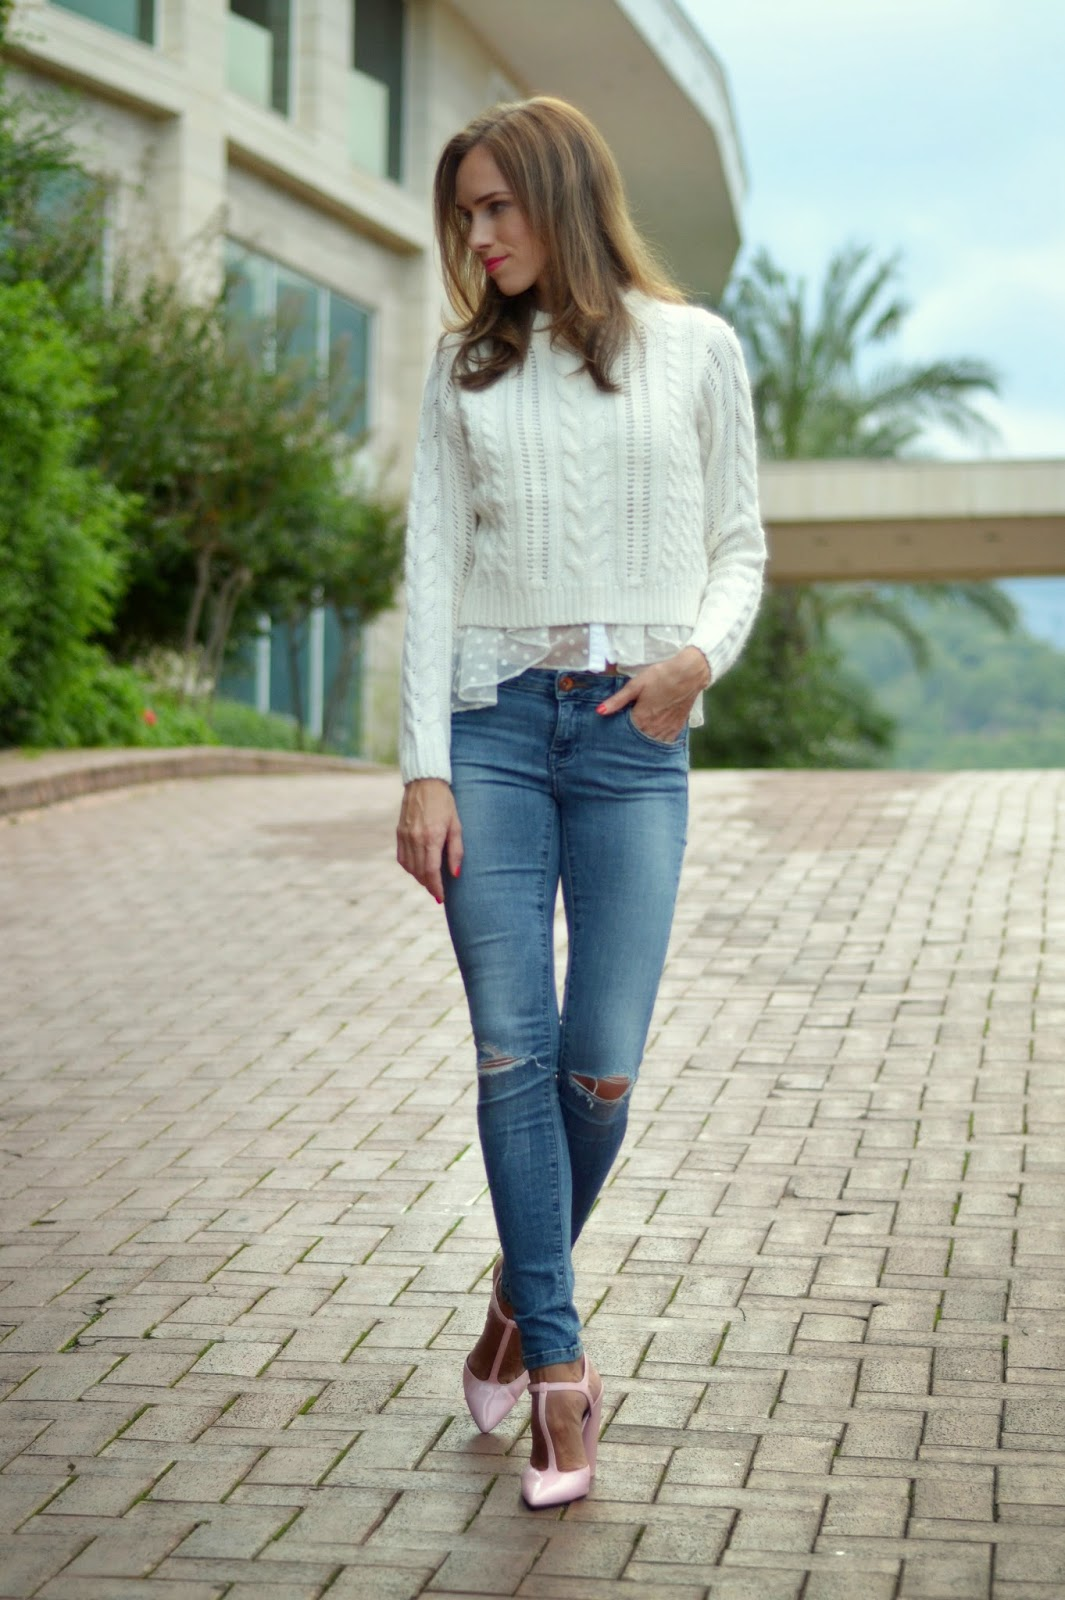 white-knit-blue-ripped-skinny-jeans-pink-heels-outfit kristjaana mere